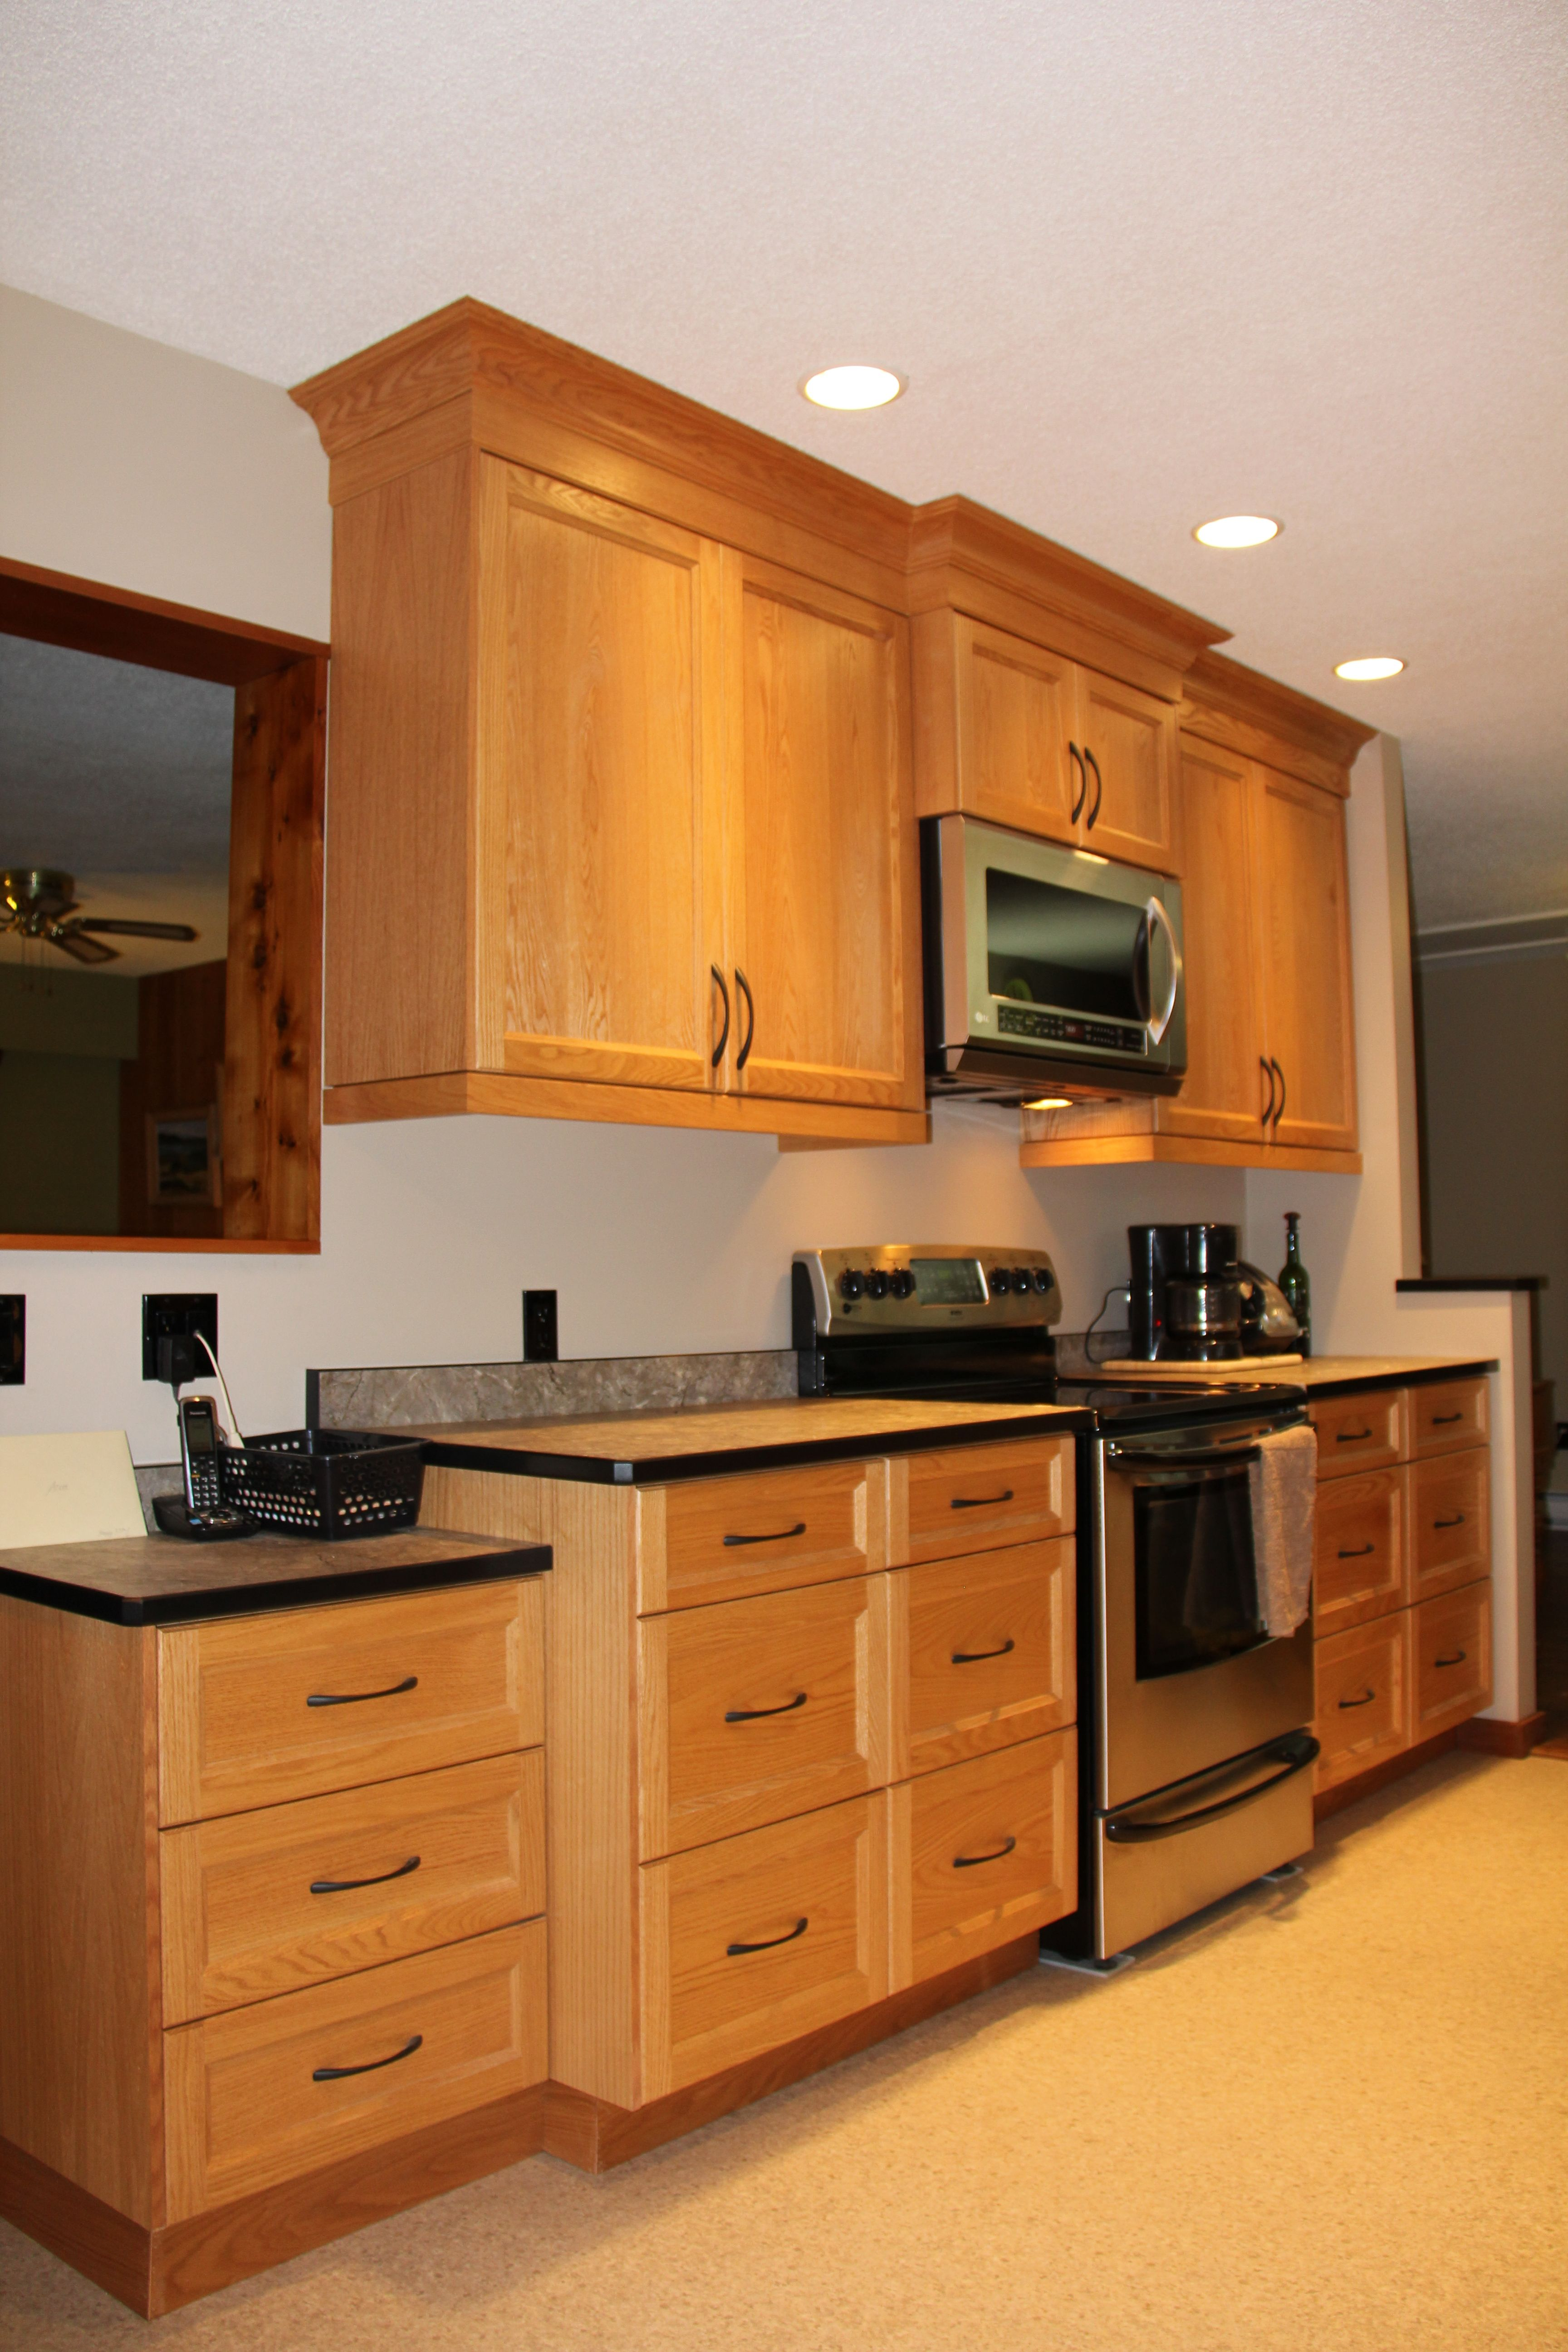 Red oak Shaker style kitchen and a laminate countertop ...